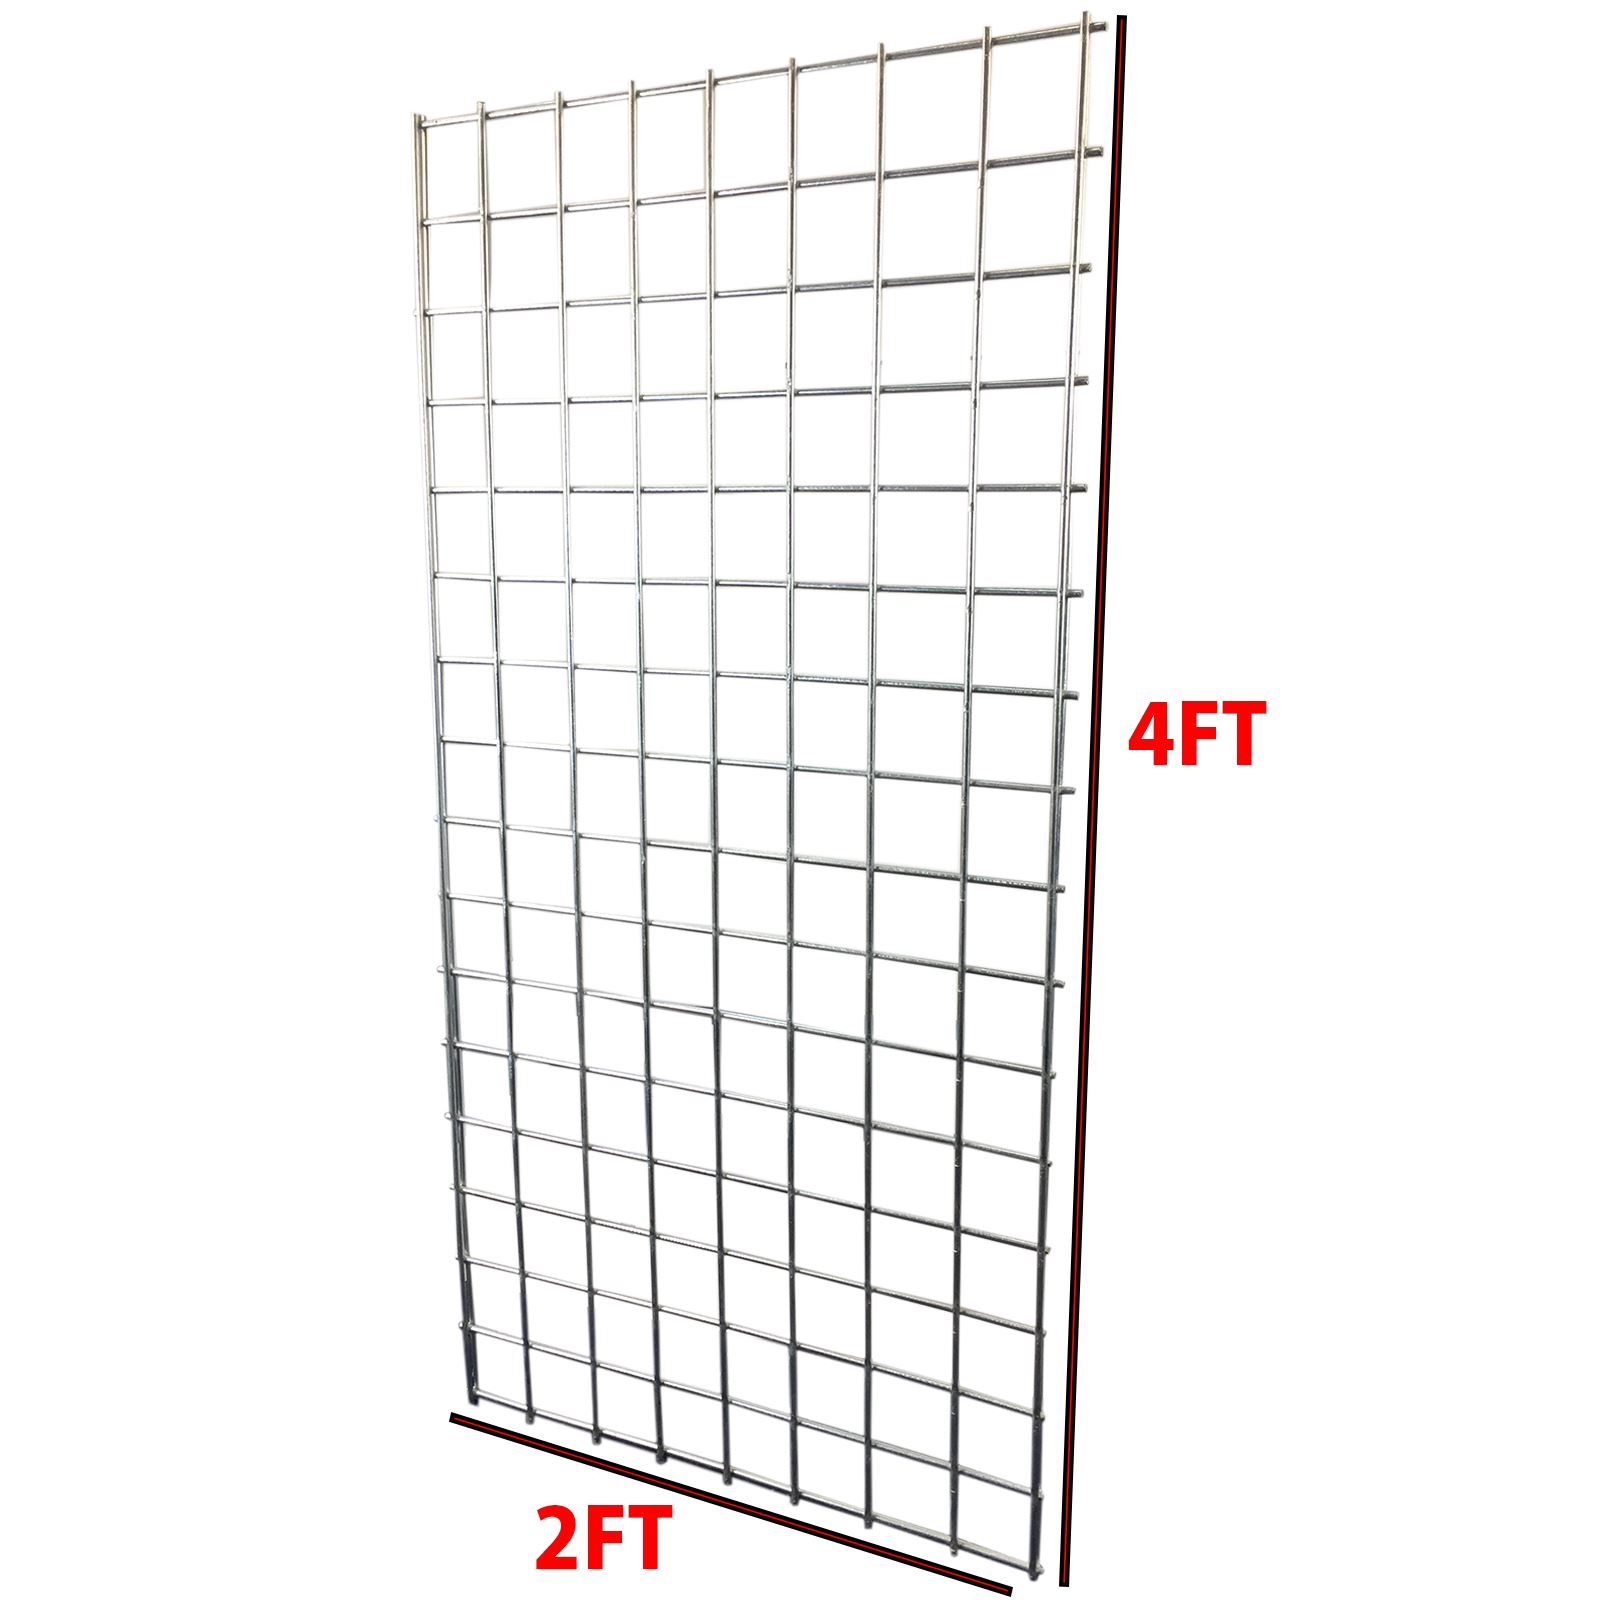 4ft x 2ft heavy duty grid wall  gridwall mesh steel display panel shop retail